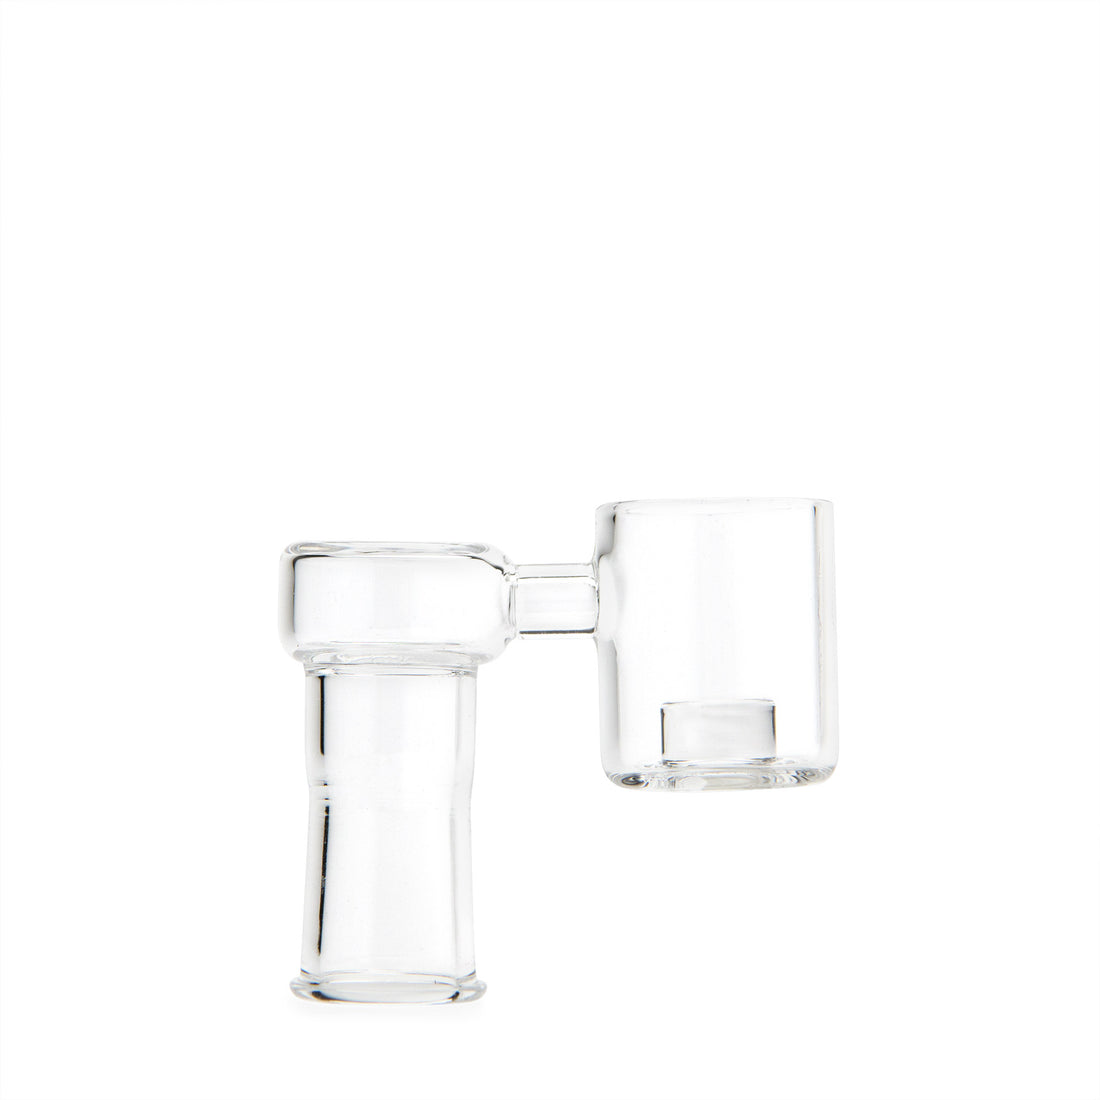 XL Quartz Core Reactor Banger 14mm - 420 Science - The most trusted online smoke shop.